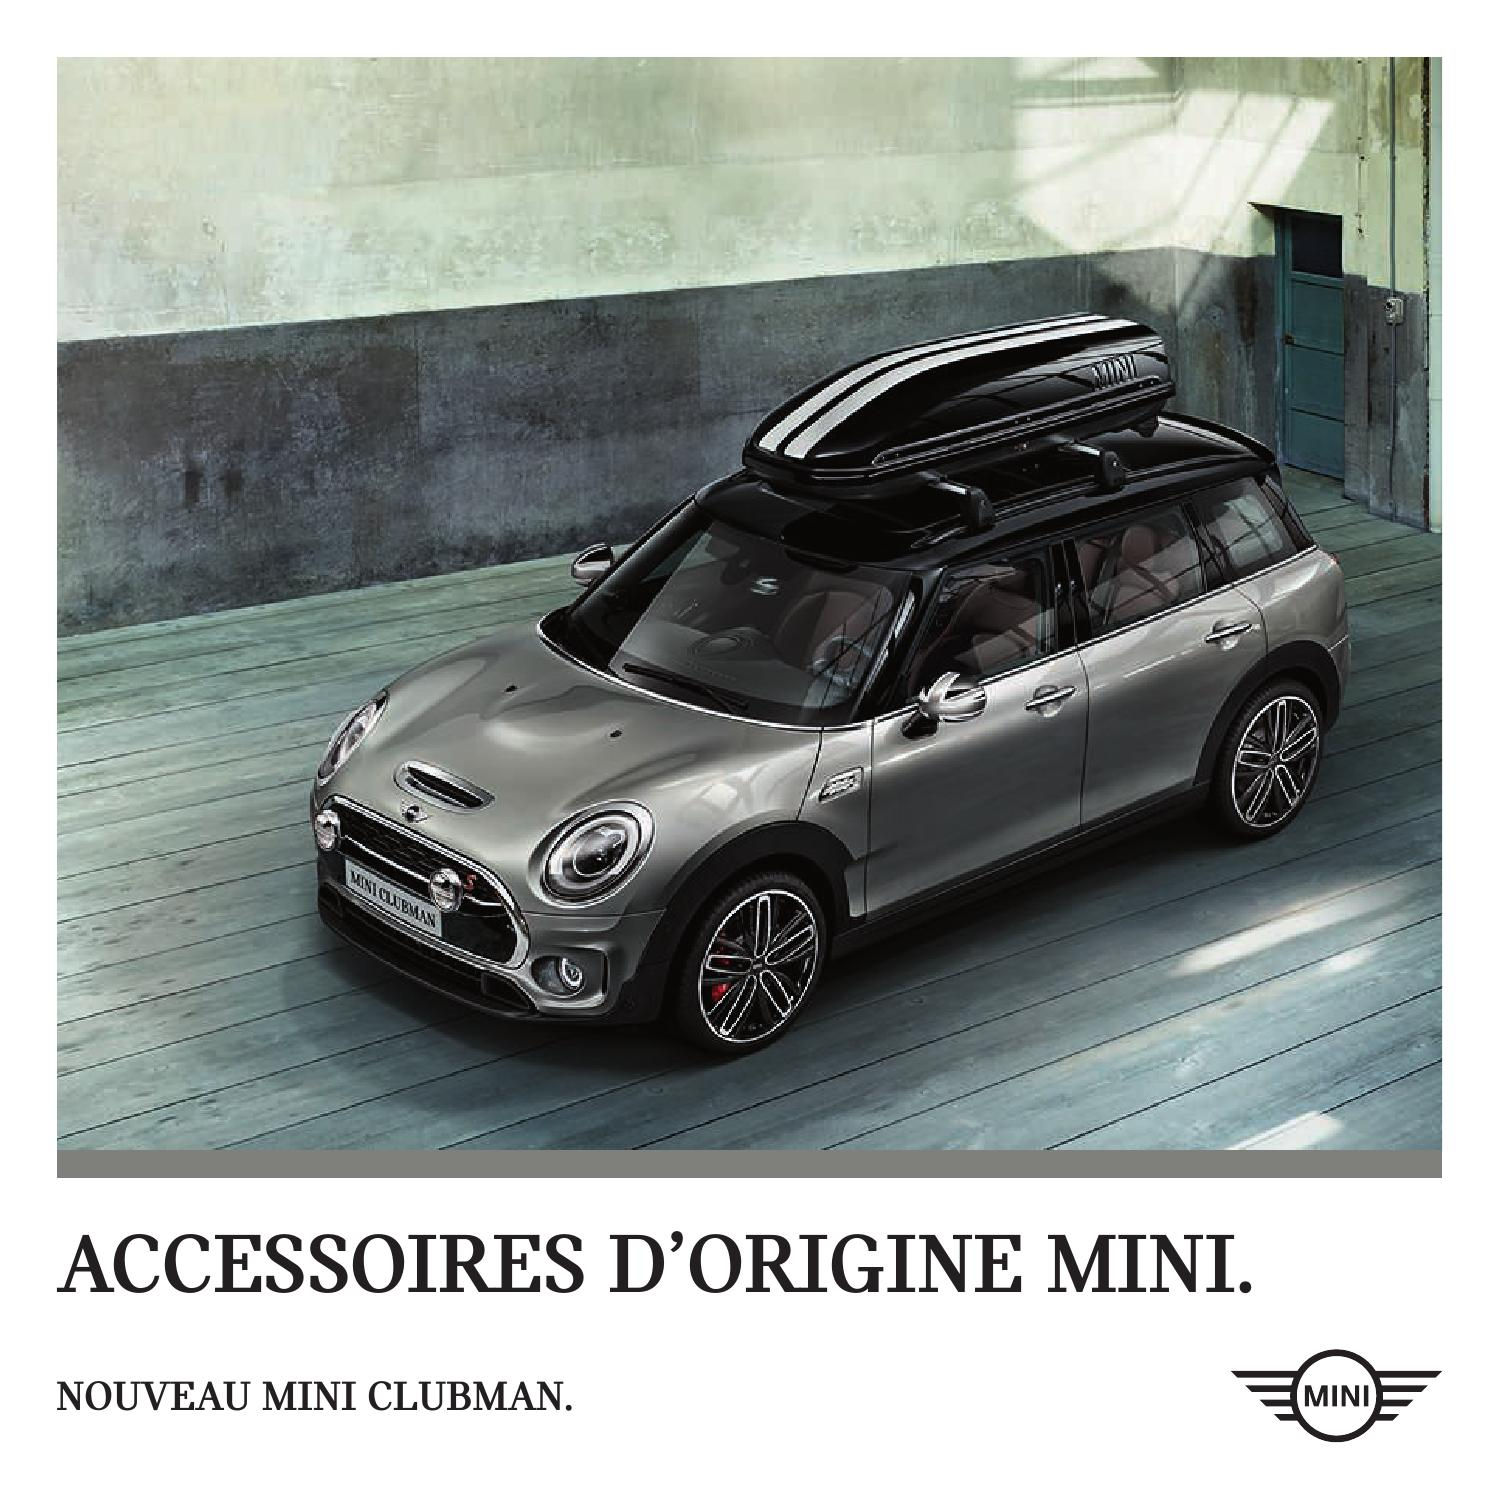 nouveau mini clubman catalogue accessoires by bmw group belux issuu. Black Bedroom Furniture Sets. Home Design Ideas